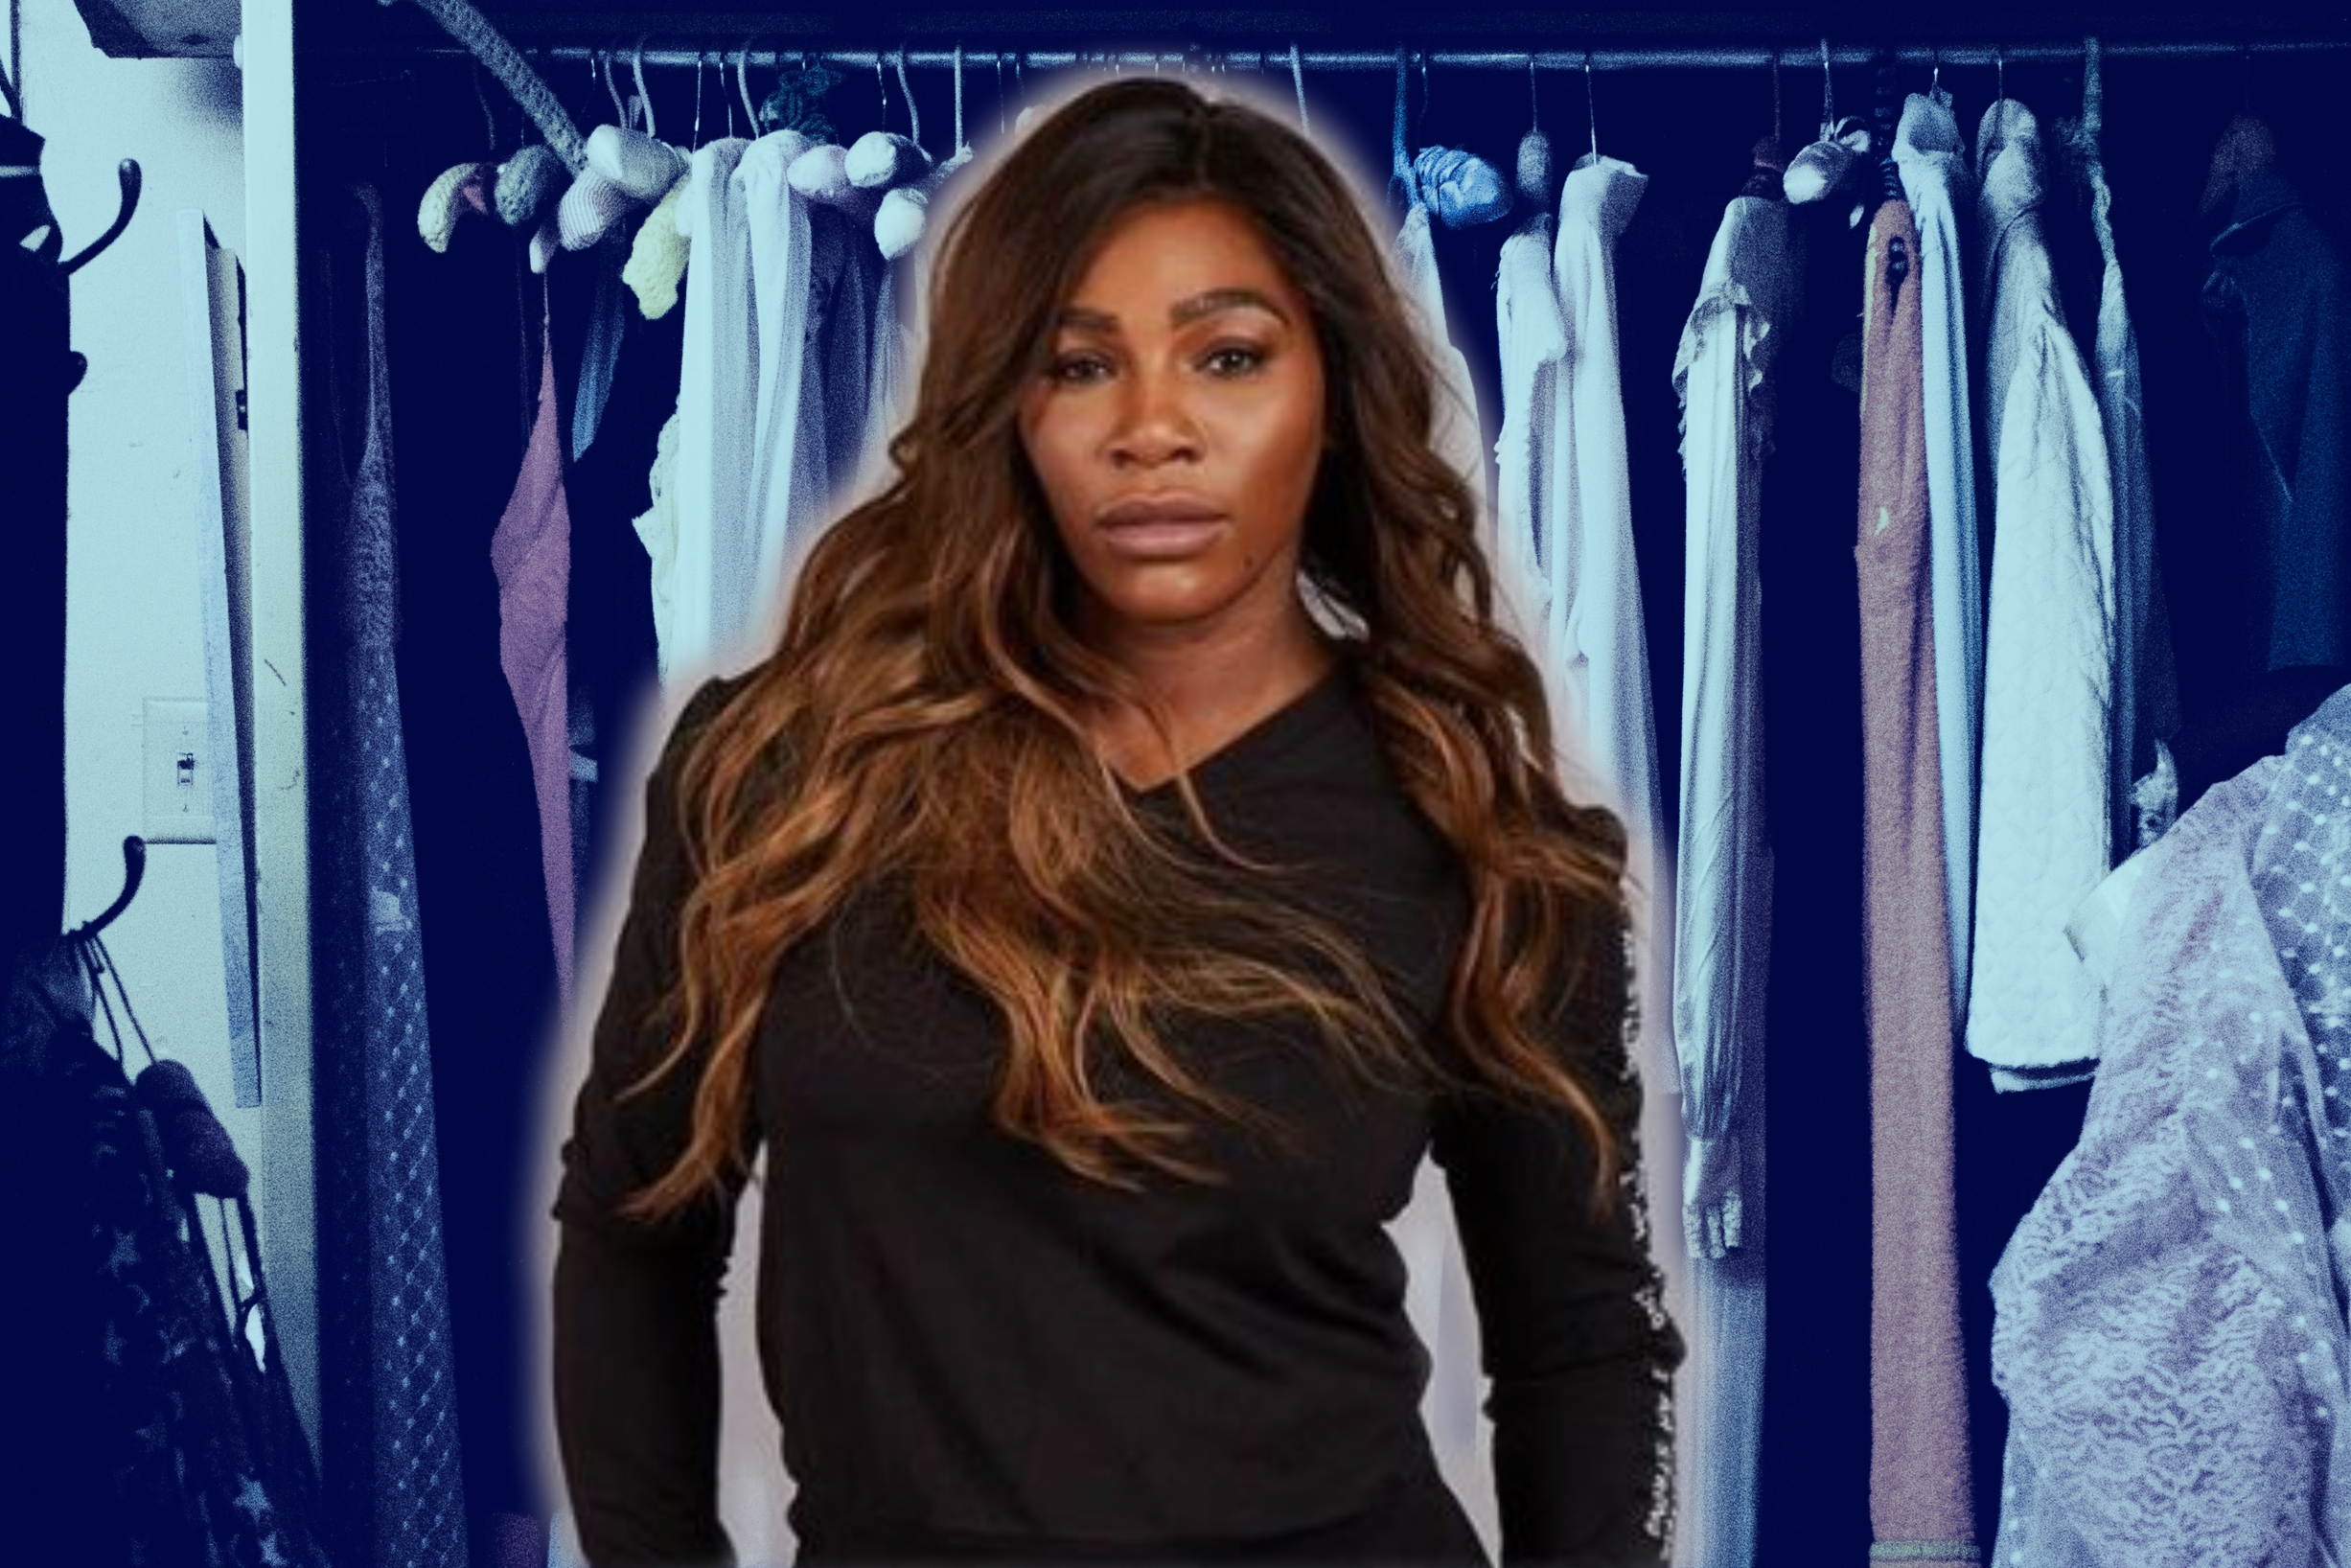 Serena Williams Is The First Woman Appointed To Poshmark's Board Of Directors